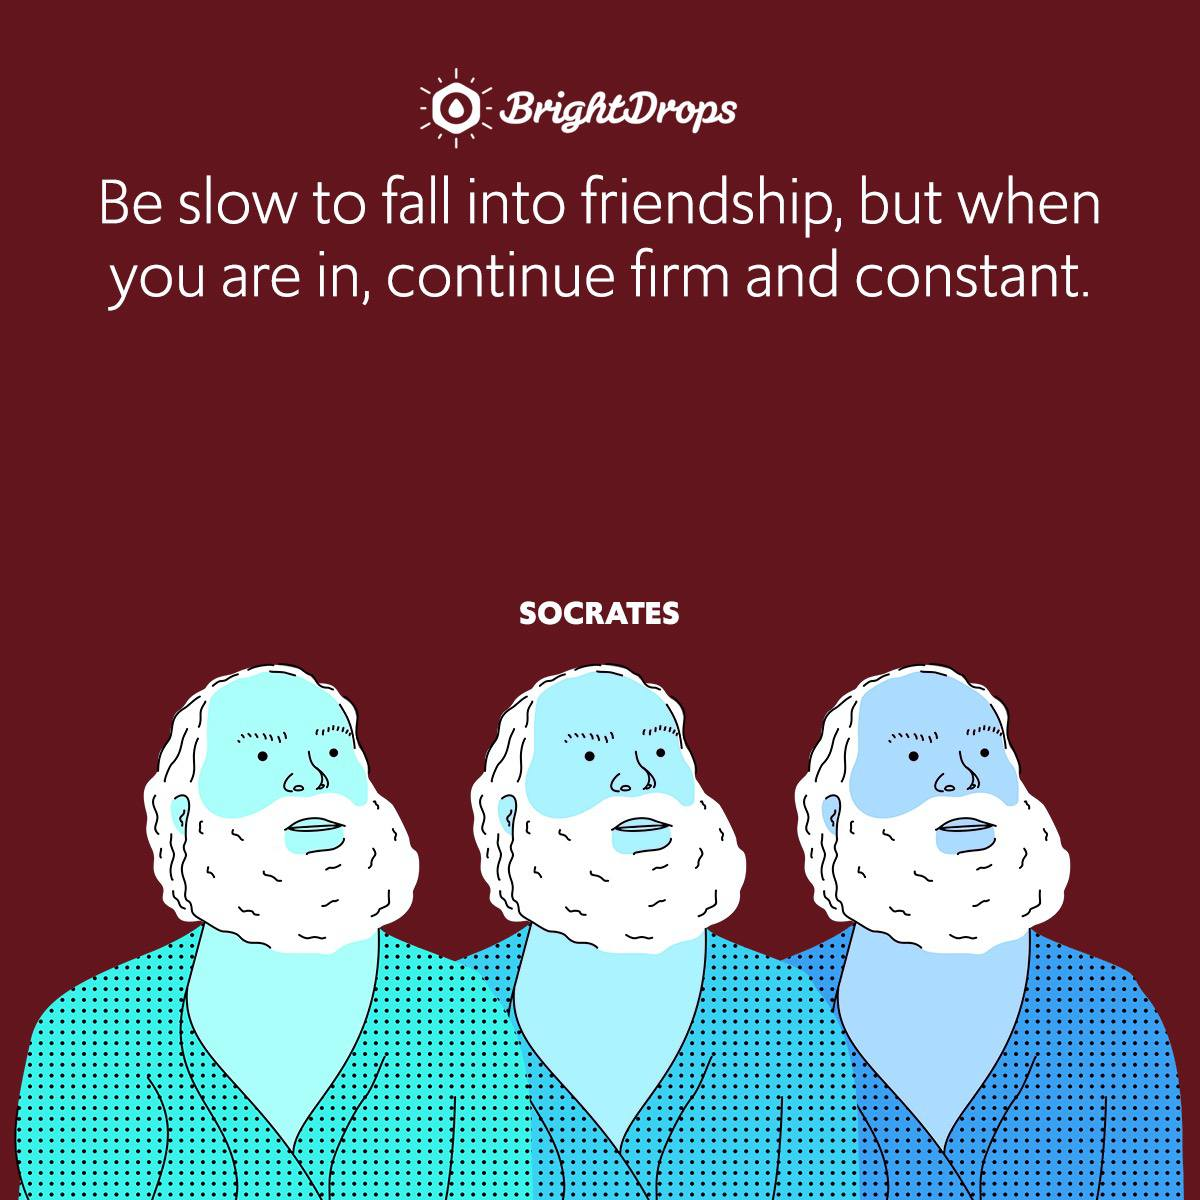 Be slow to fall into friendship, but when you are in, continue firm and constant.